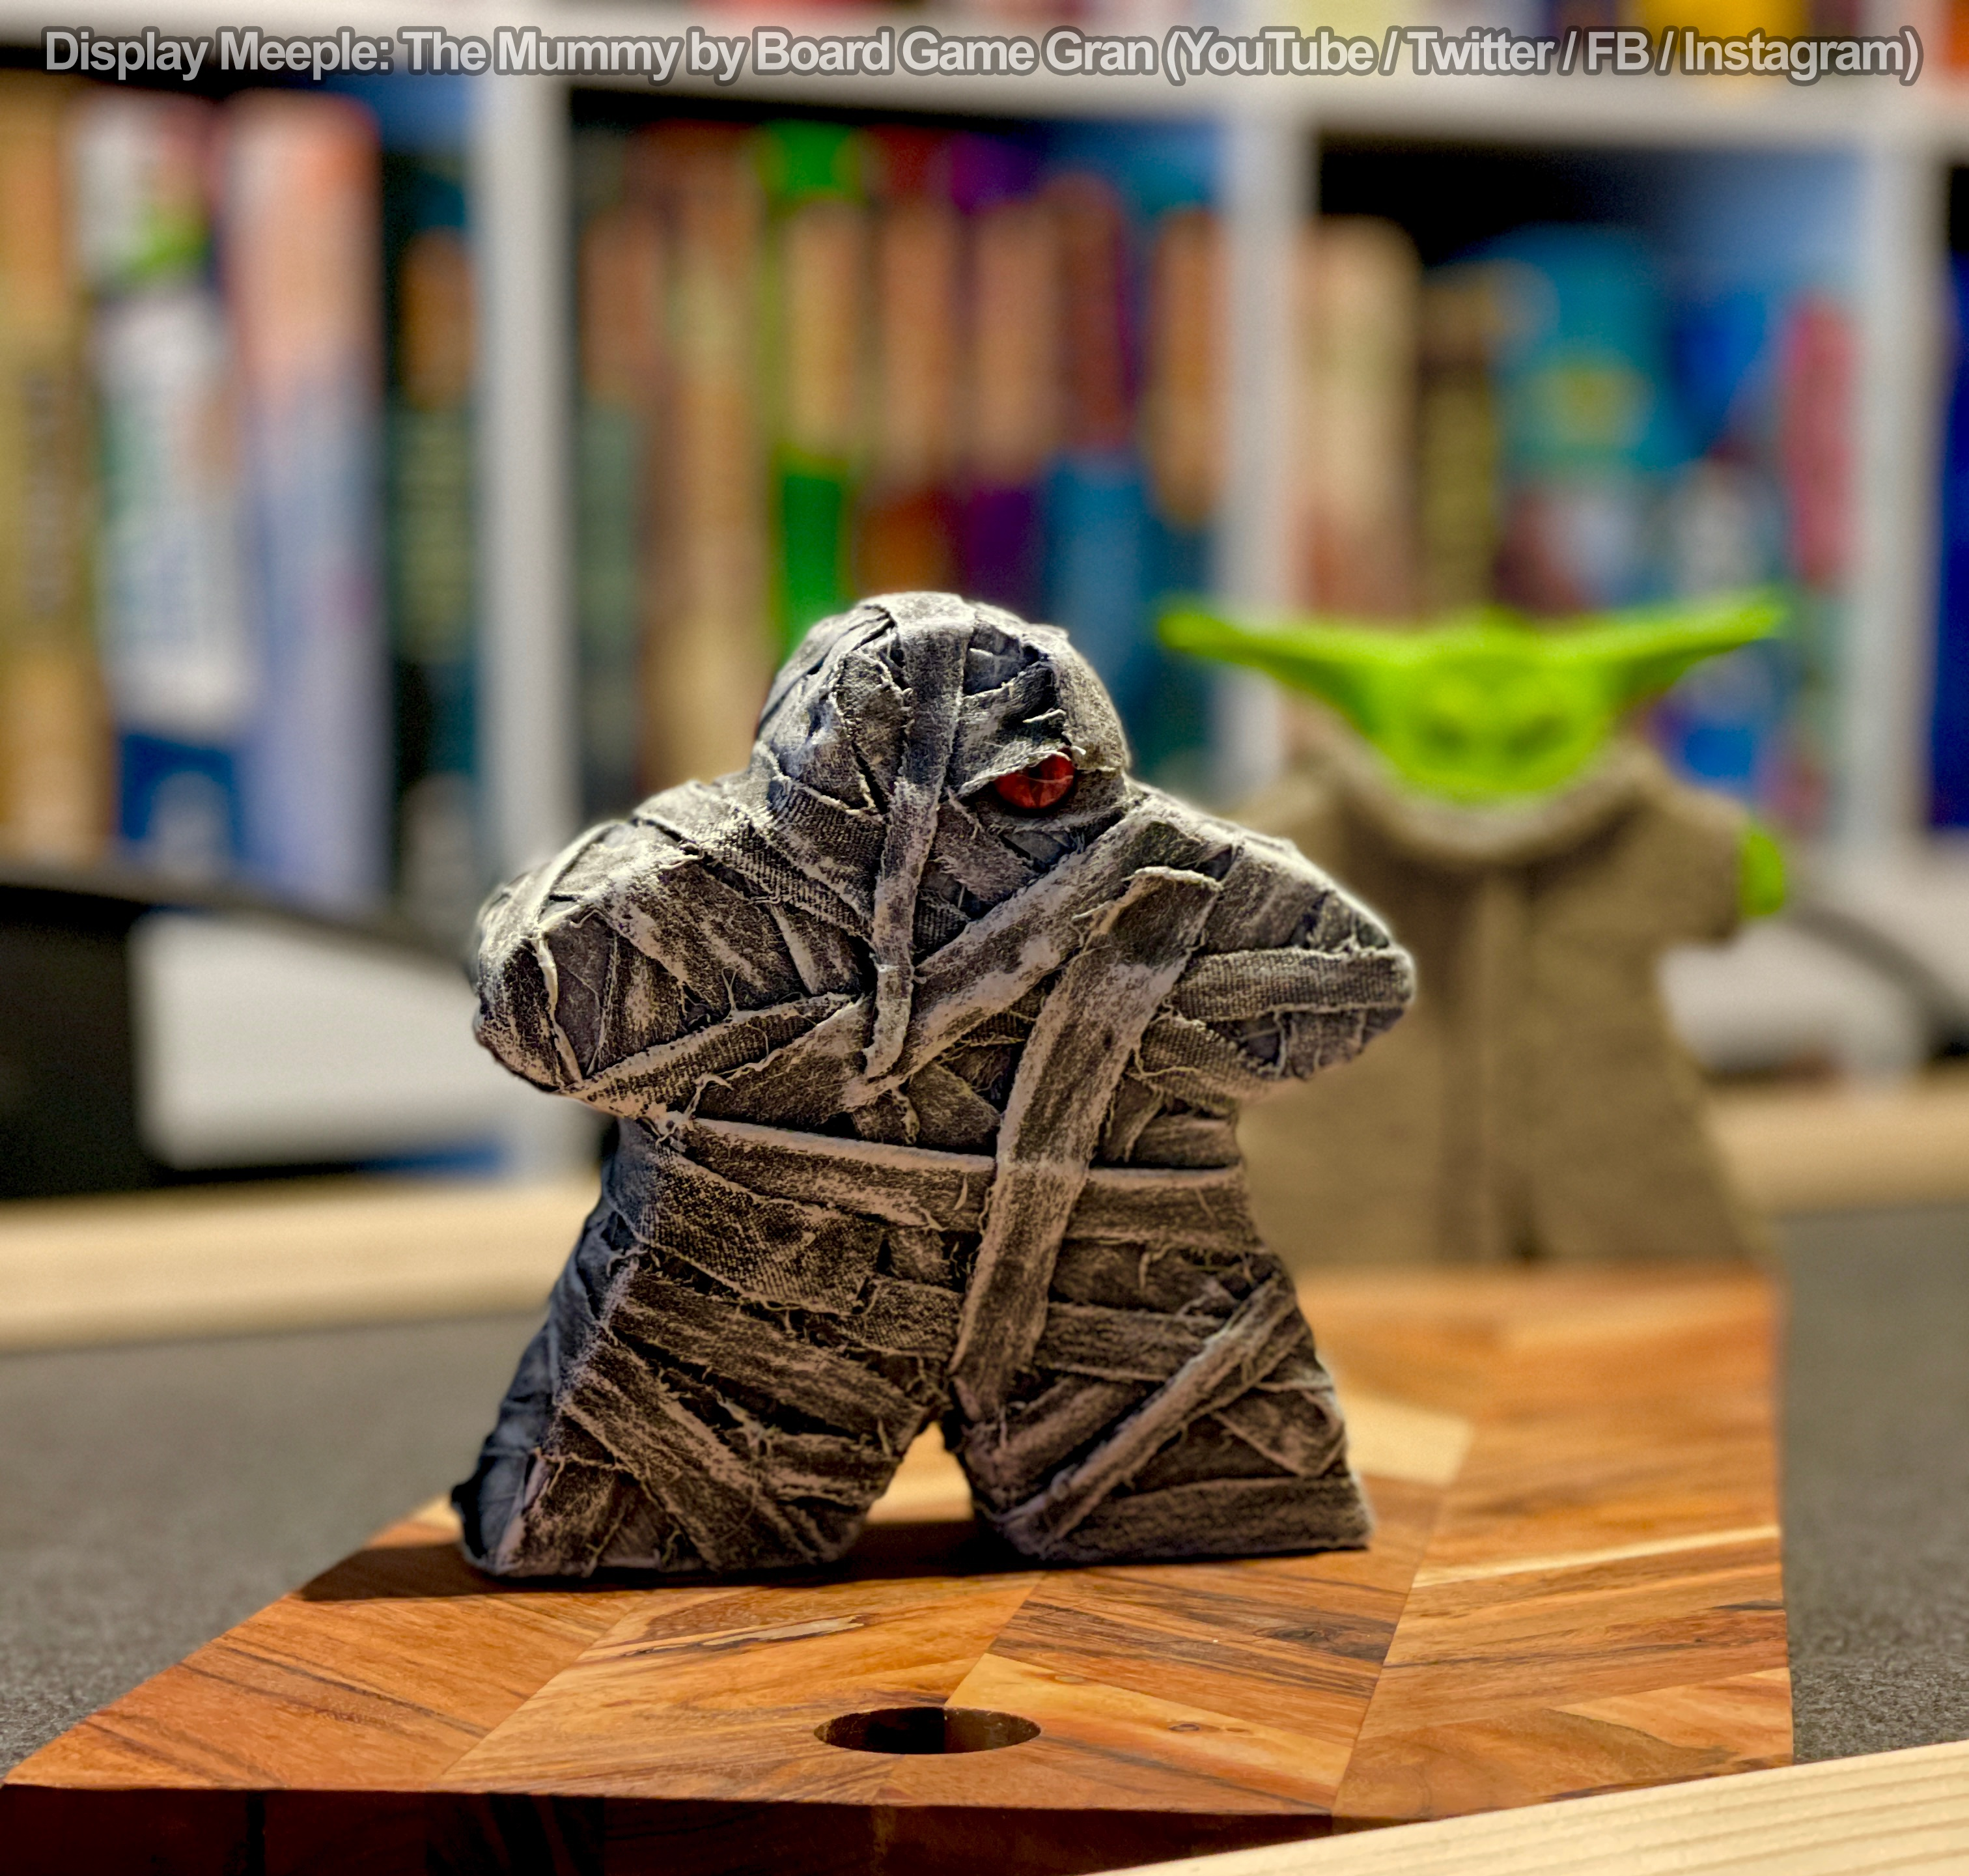 the mummy meeple by board game gran